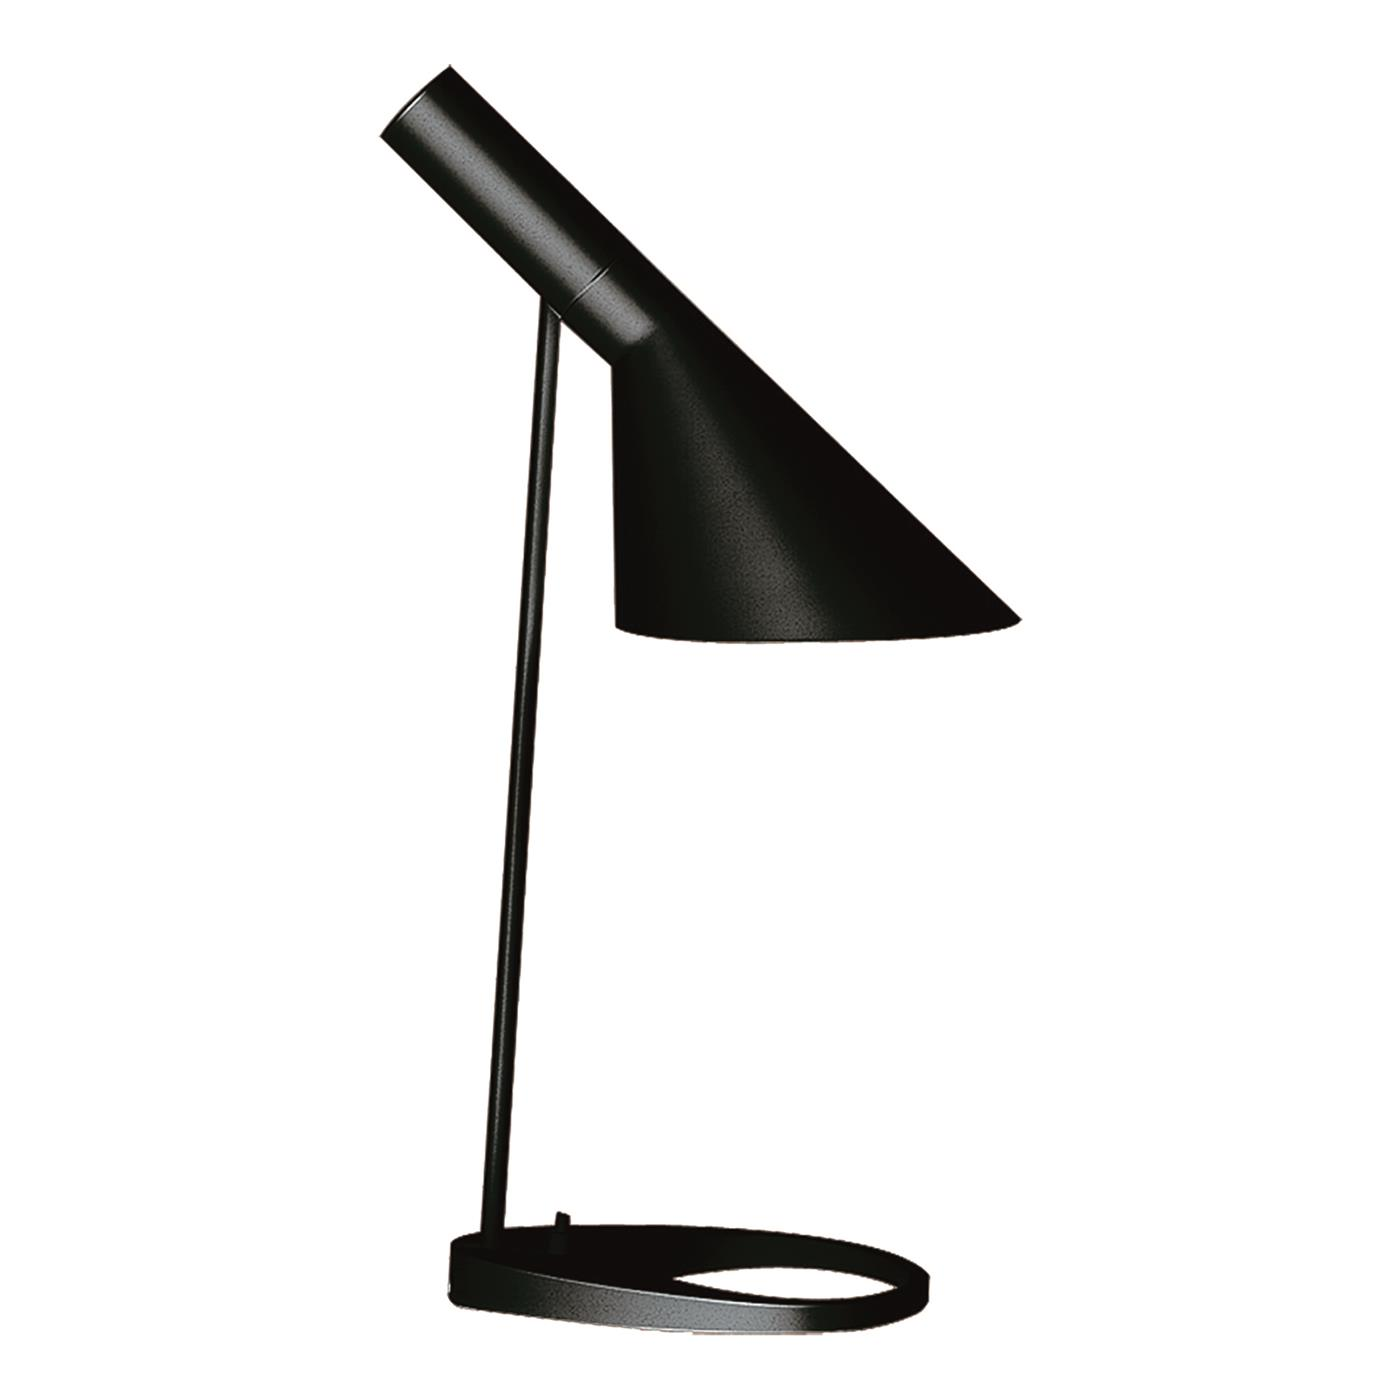 arne jacobsen lampe udsalg solceller og lysdioder. Black Bedroom Furniture Sets. Home Design Ideas